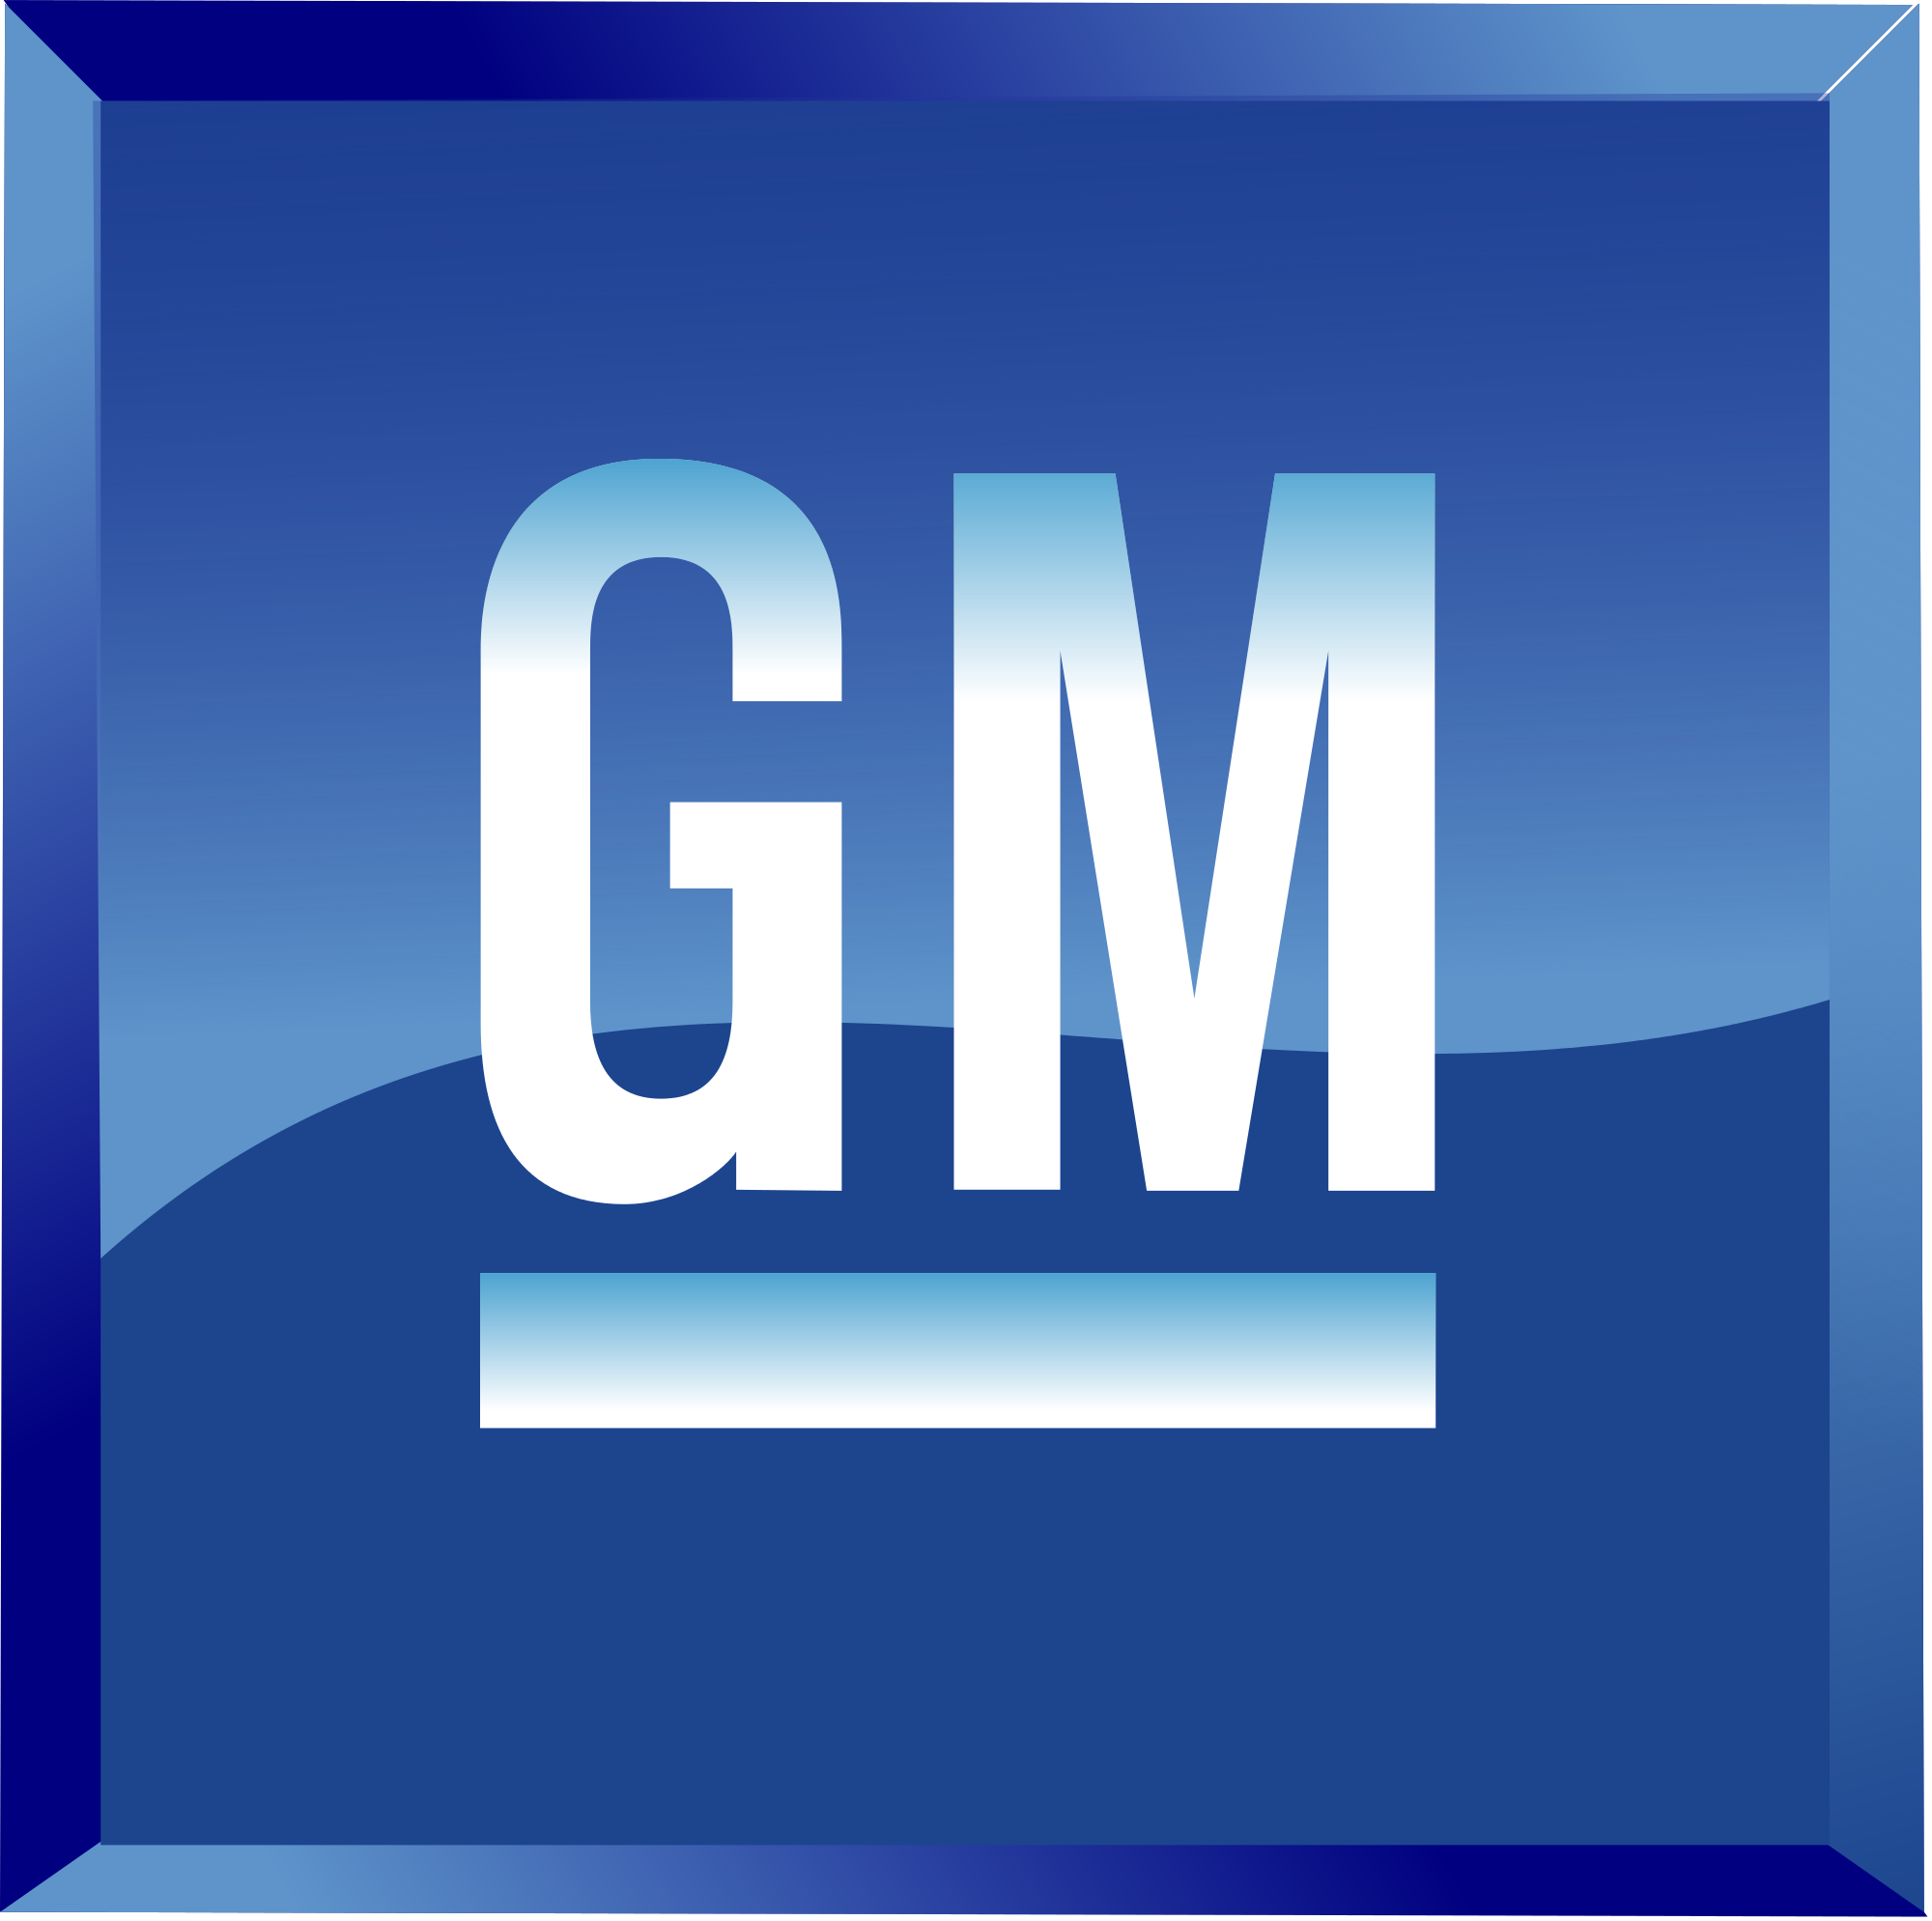 sacl_gm_general_motors_logo.jpg